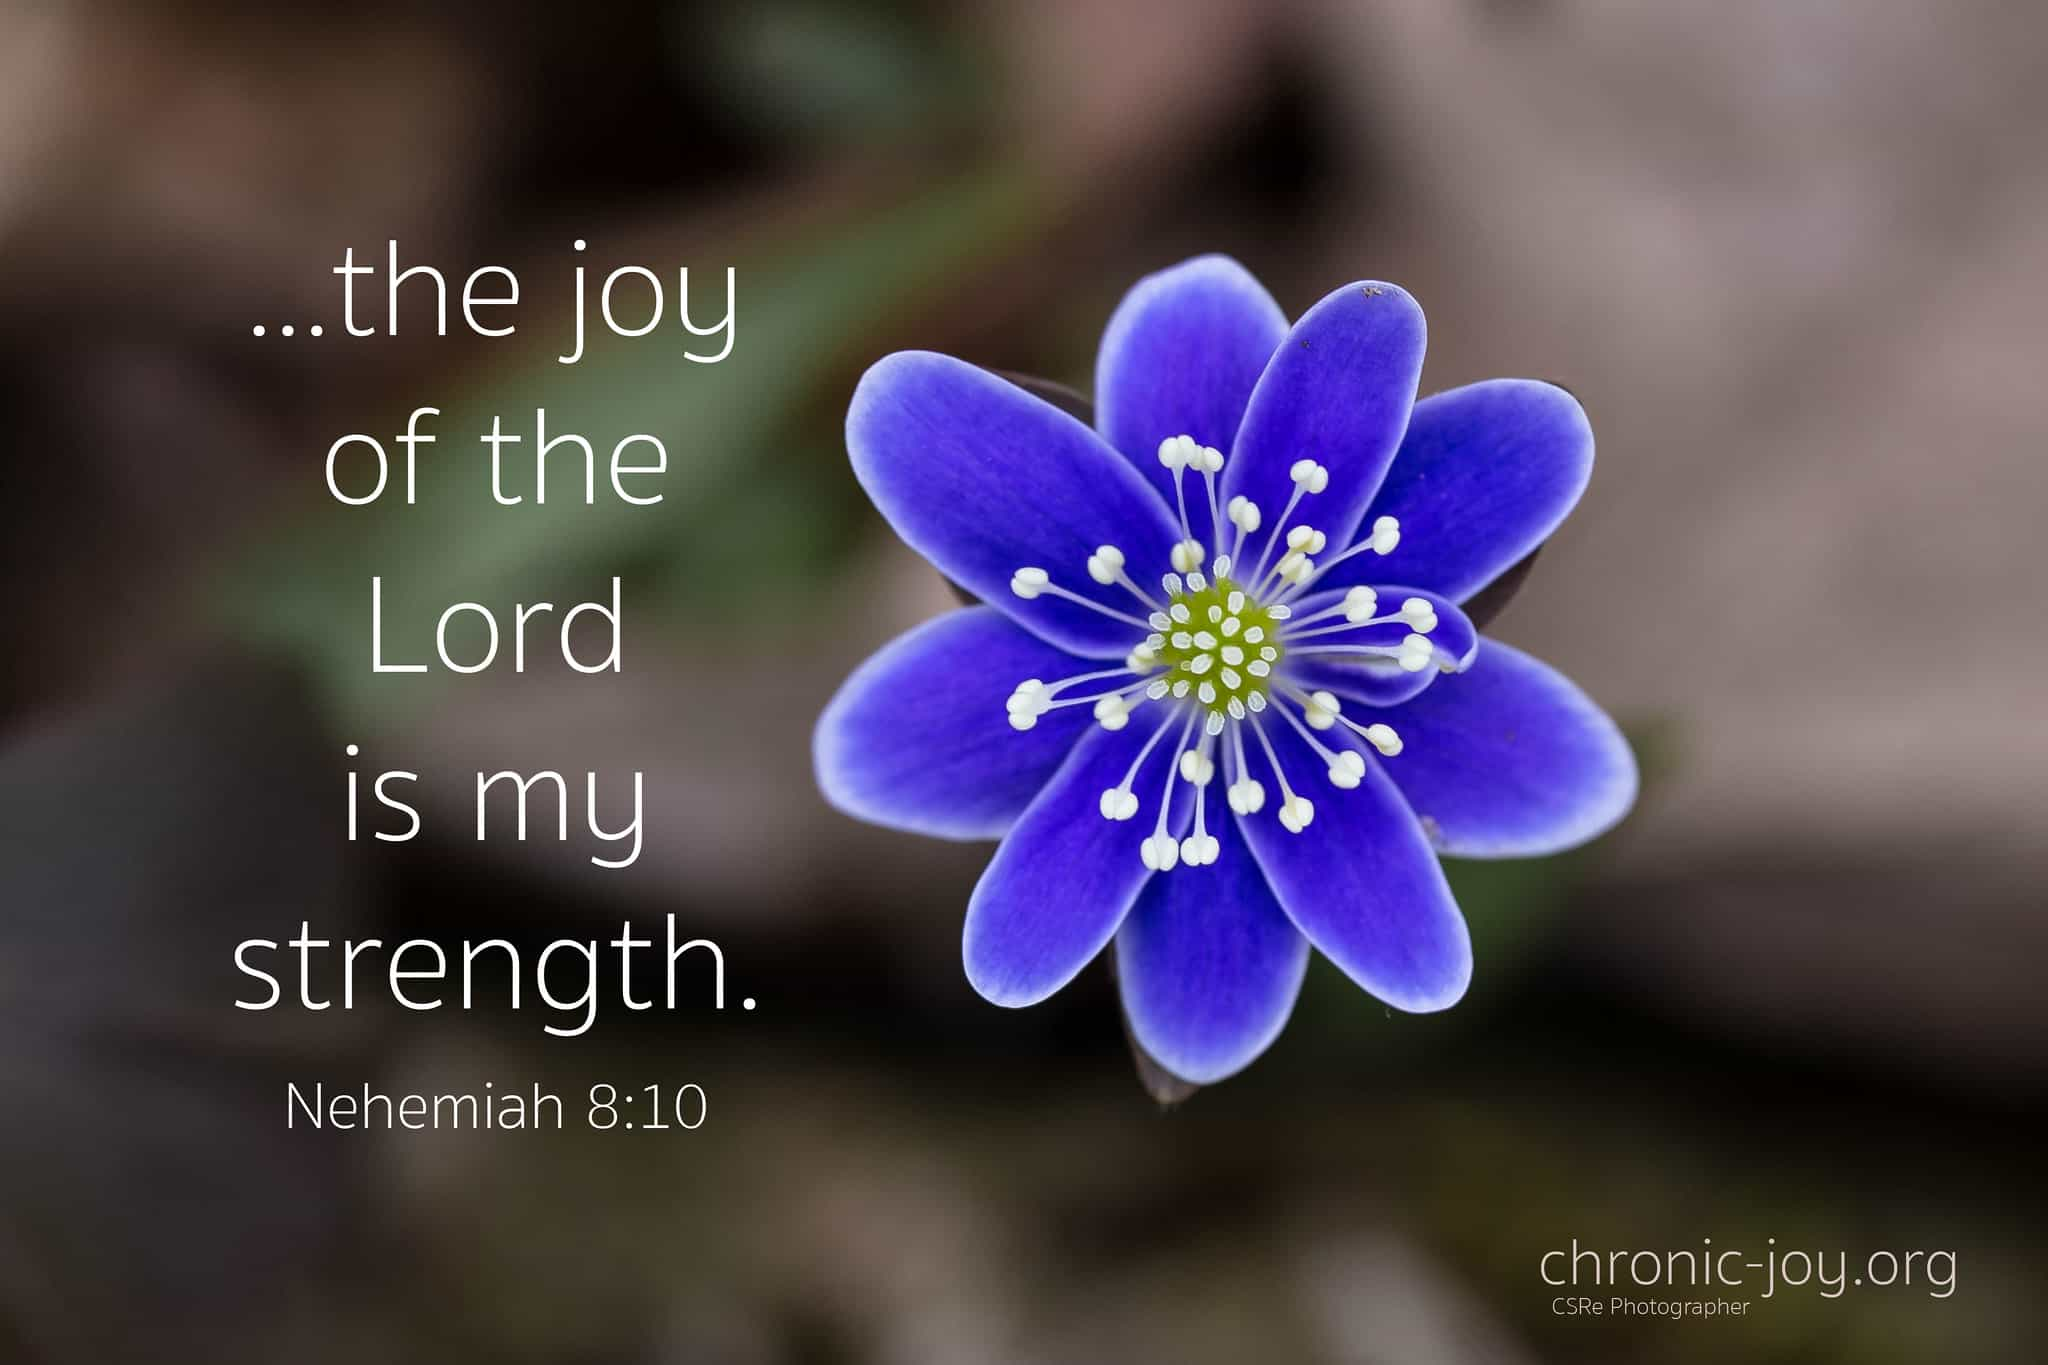 Joy is a Matter of the Heart